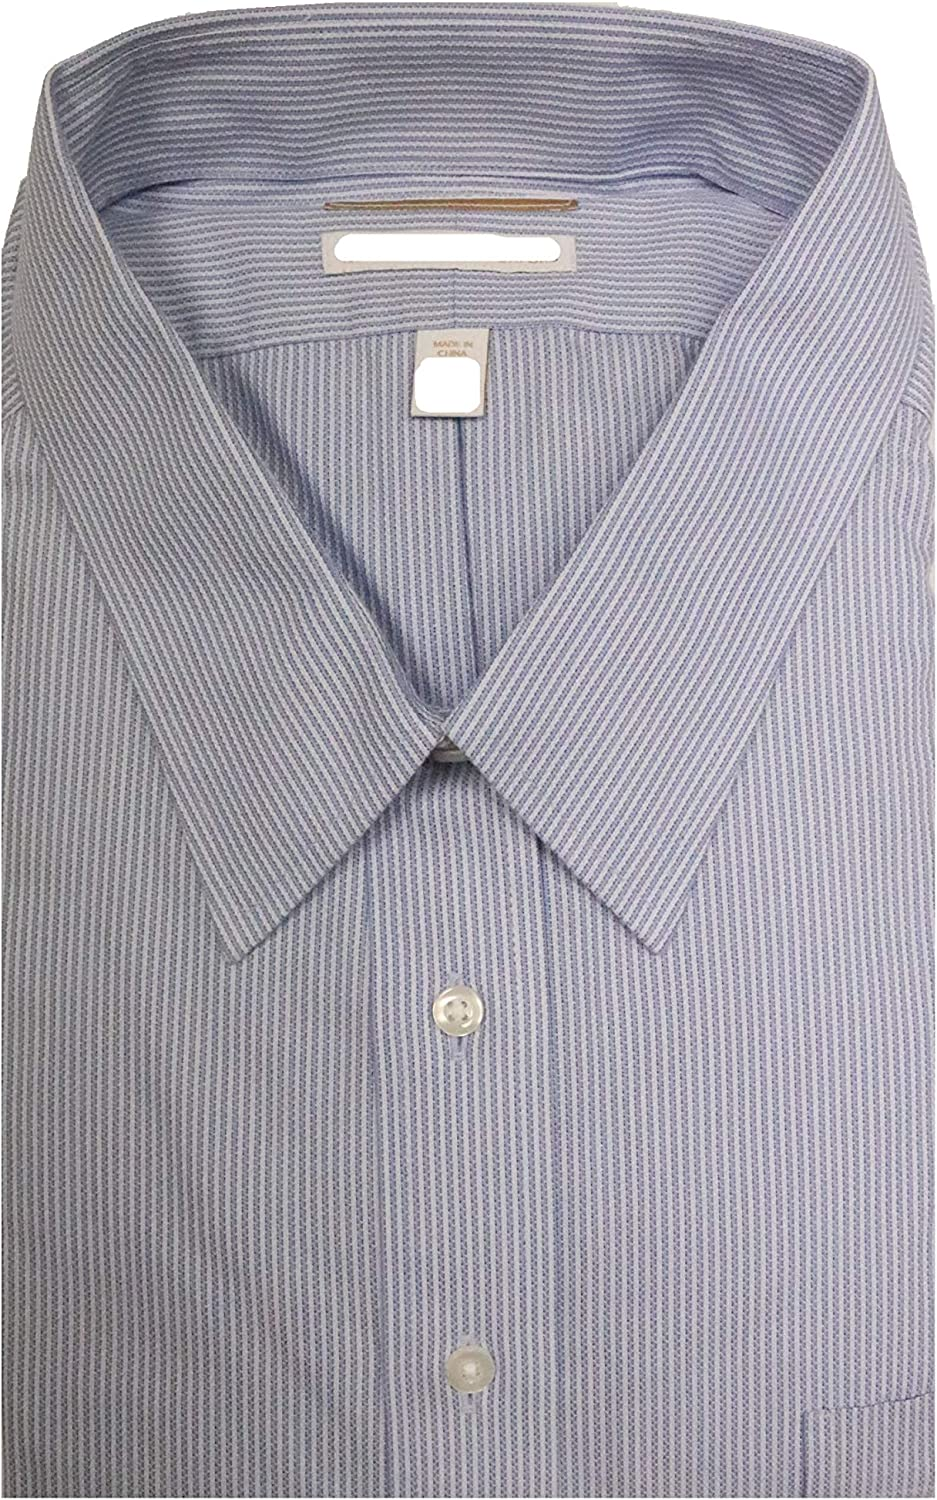 Gold Label Roundtree & Yorke Big and Tall Non-Iron Regular Full-Fit Point Collar Dress Shirt S75DG124